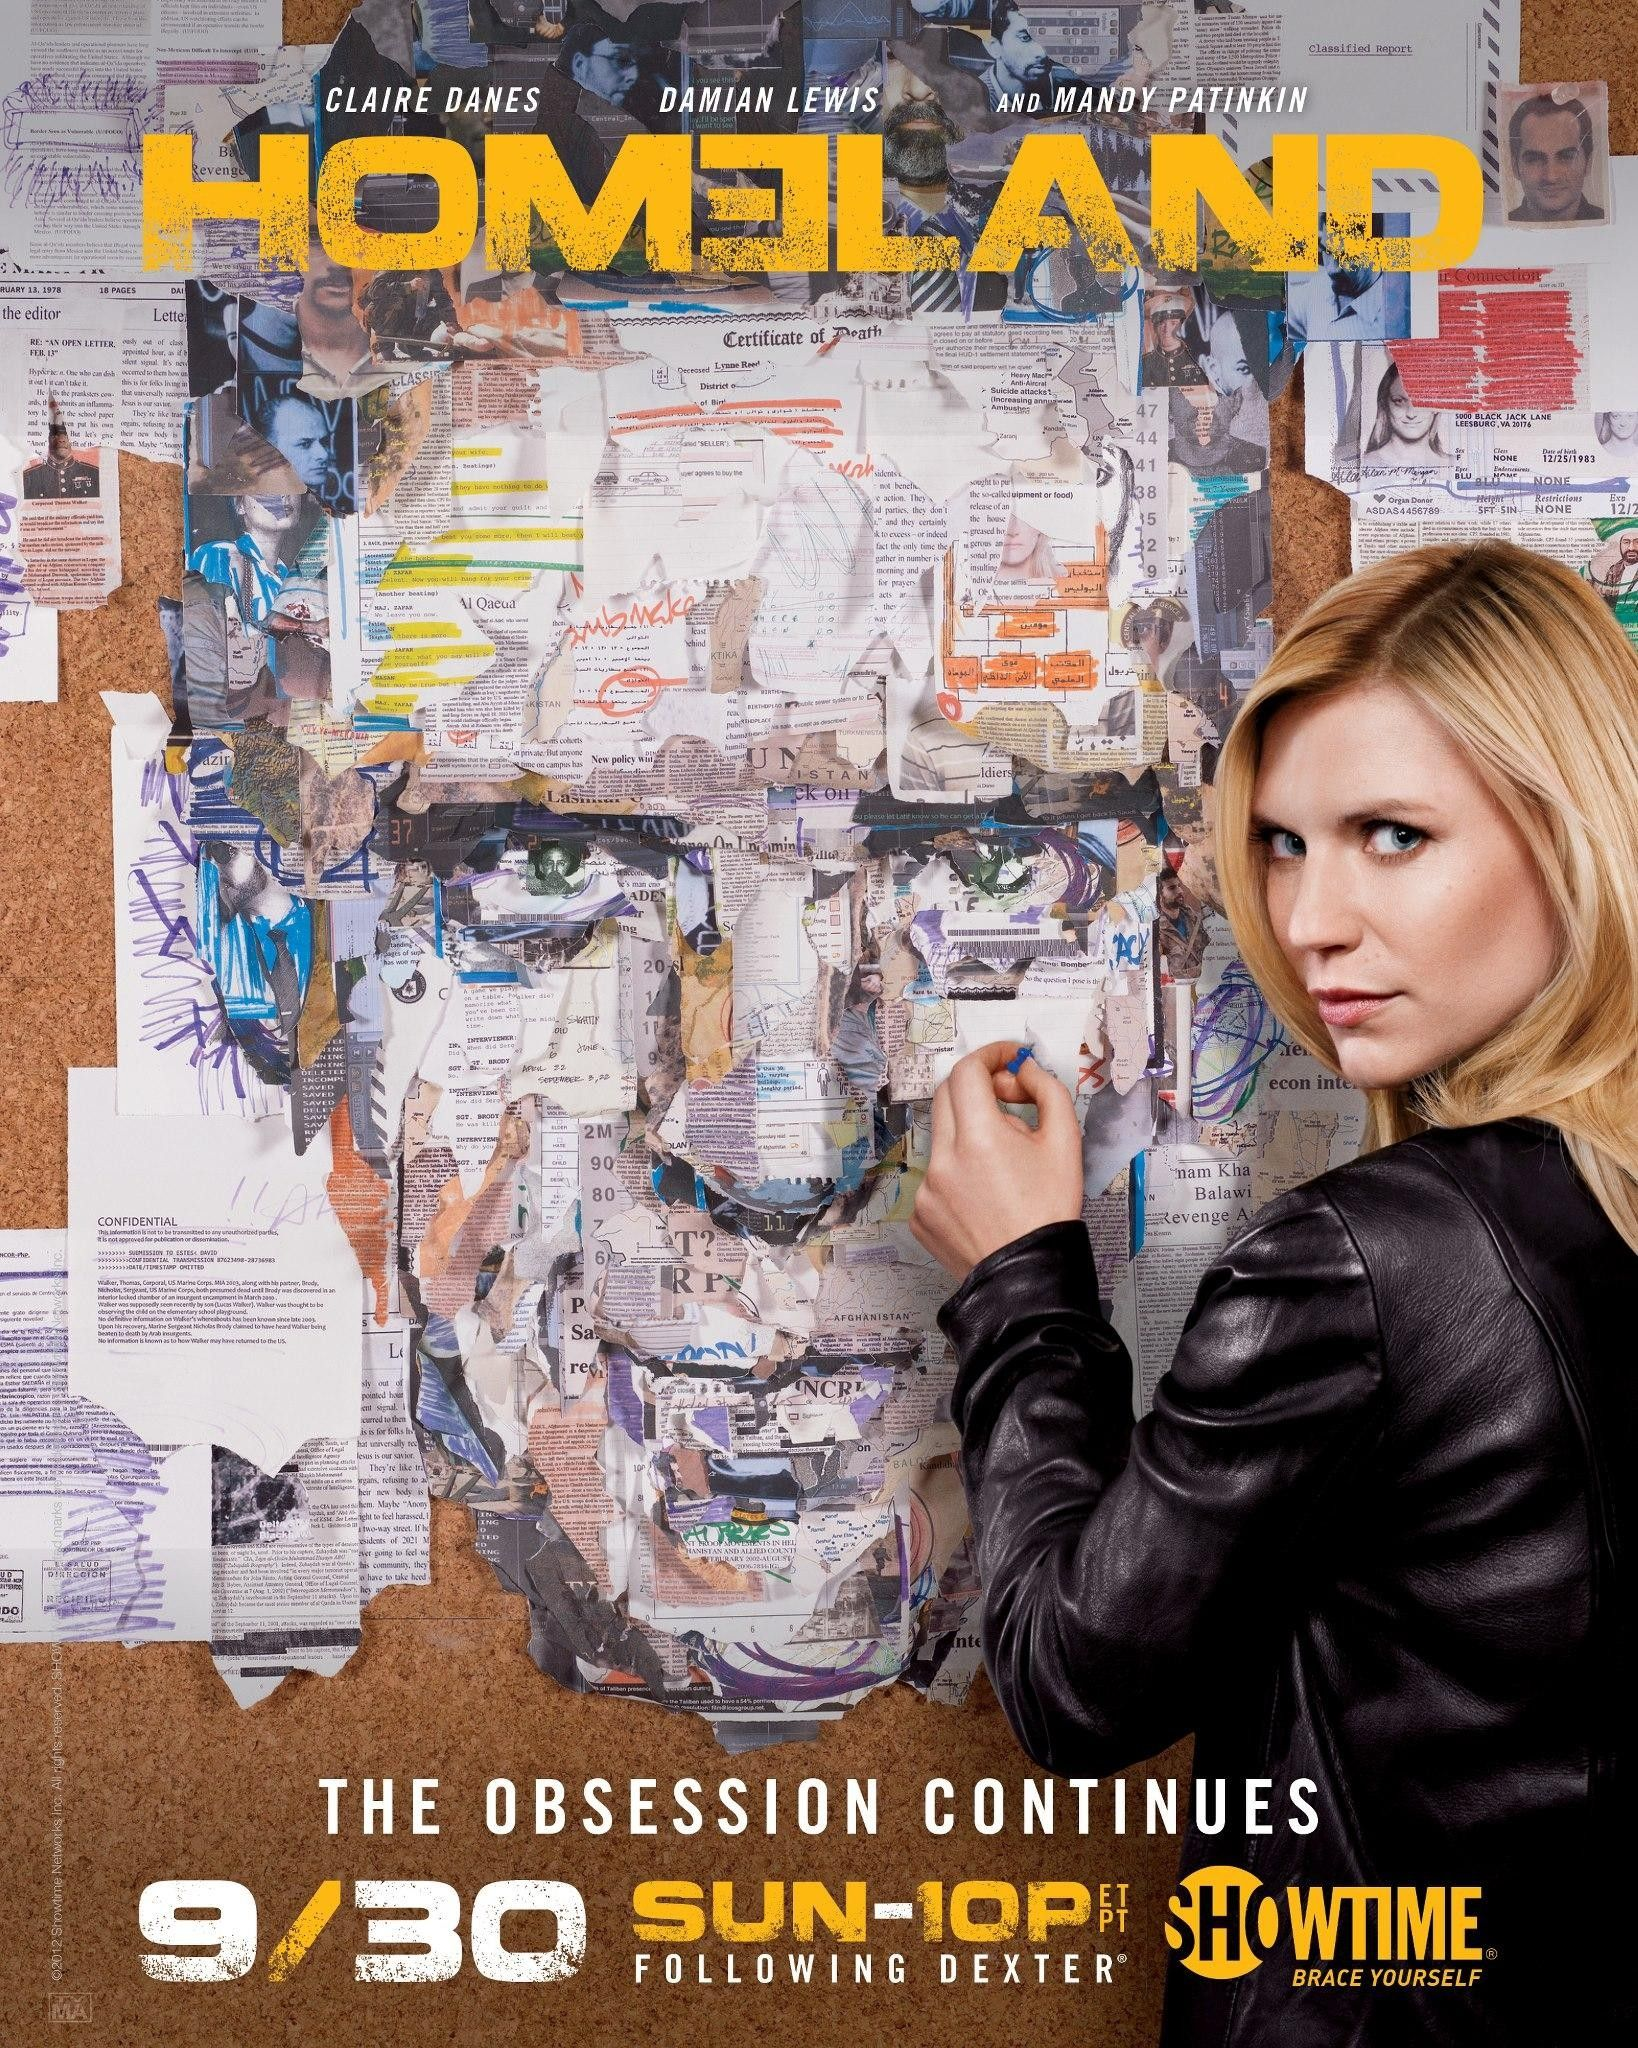 homeland season 2 finale recap. a recap of the homeland season